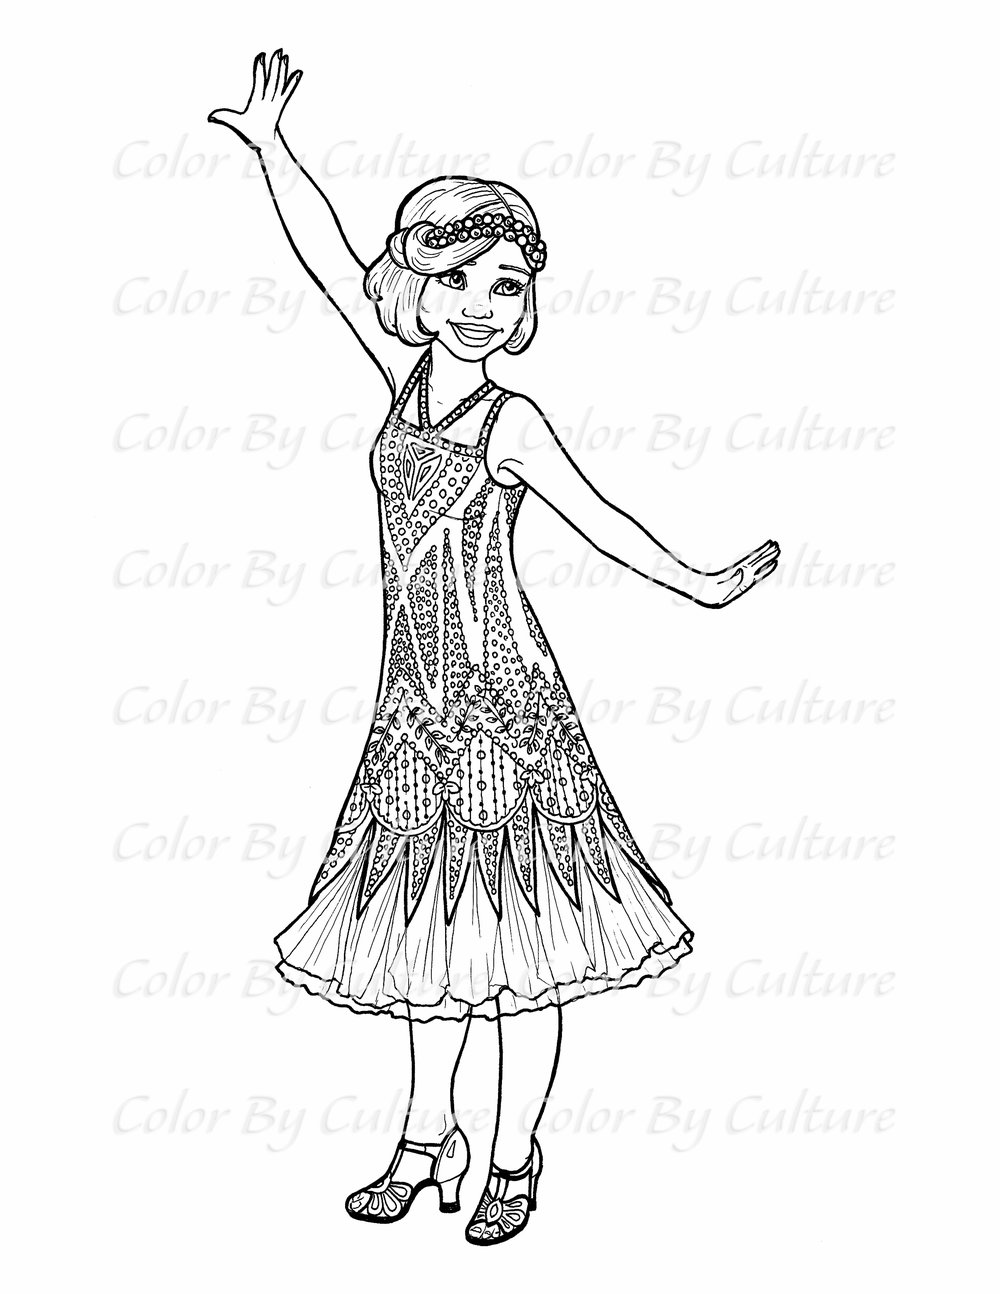 1920 s flapper girl coloring page color by culture Flapper Girl Fashion 1920 s flapper girl coloring page